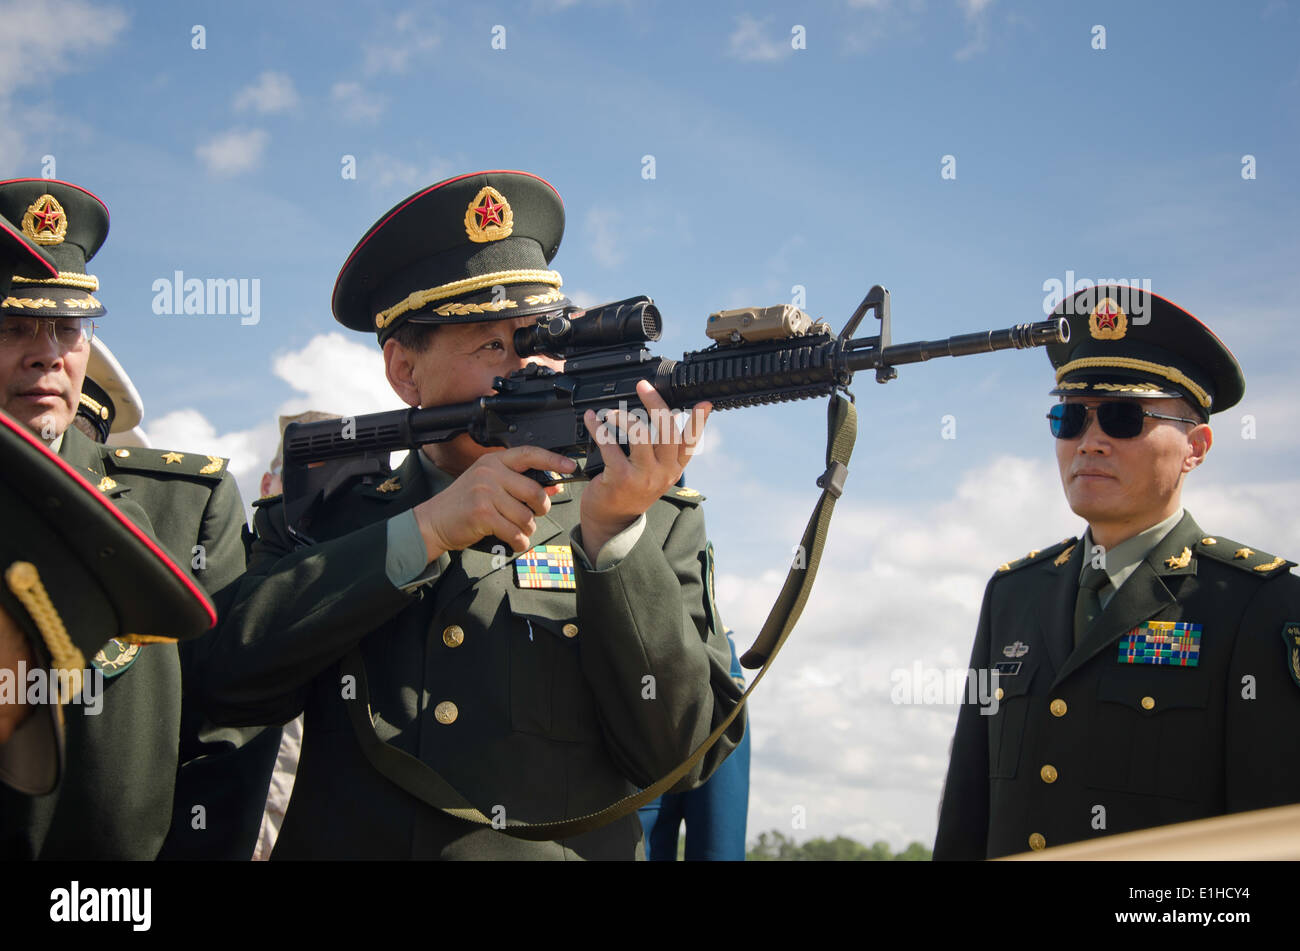 A Chinese General Officer Visiting Marine Corps Base Camp Lejeune Stock Photo Royalty Free